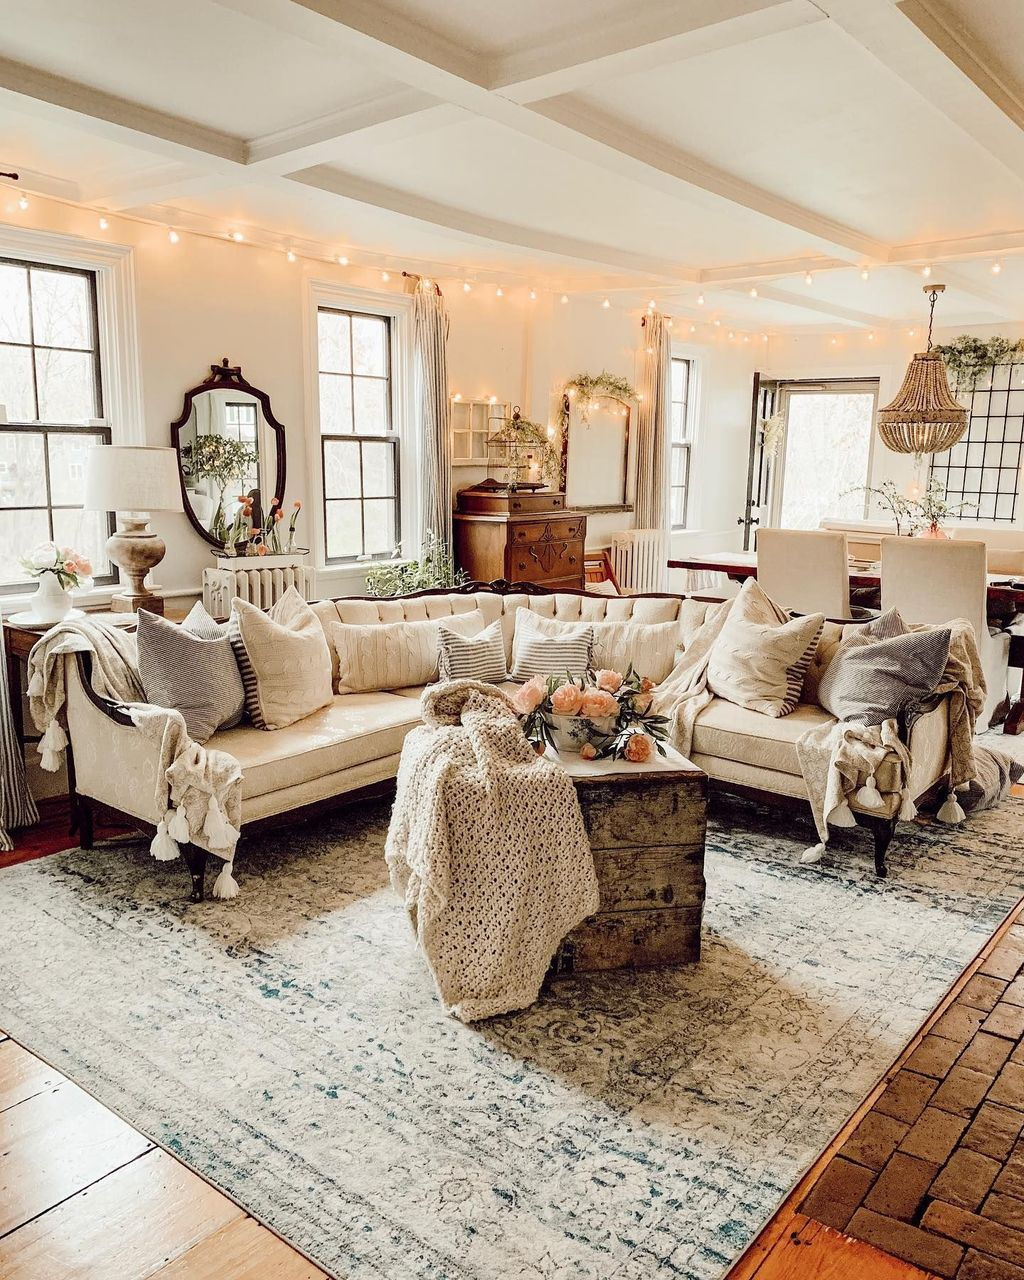 Awesome Rustic Furniture Ideas For Living Room Decor 09